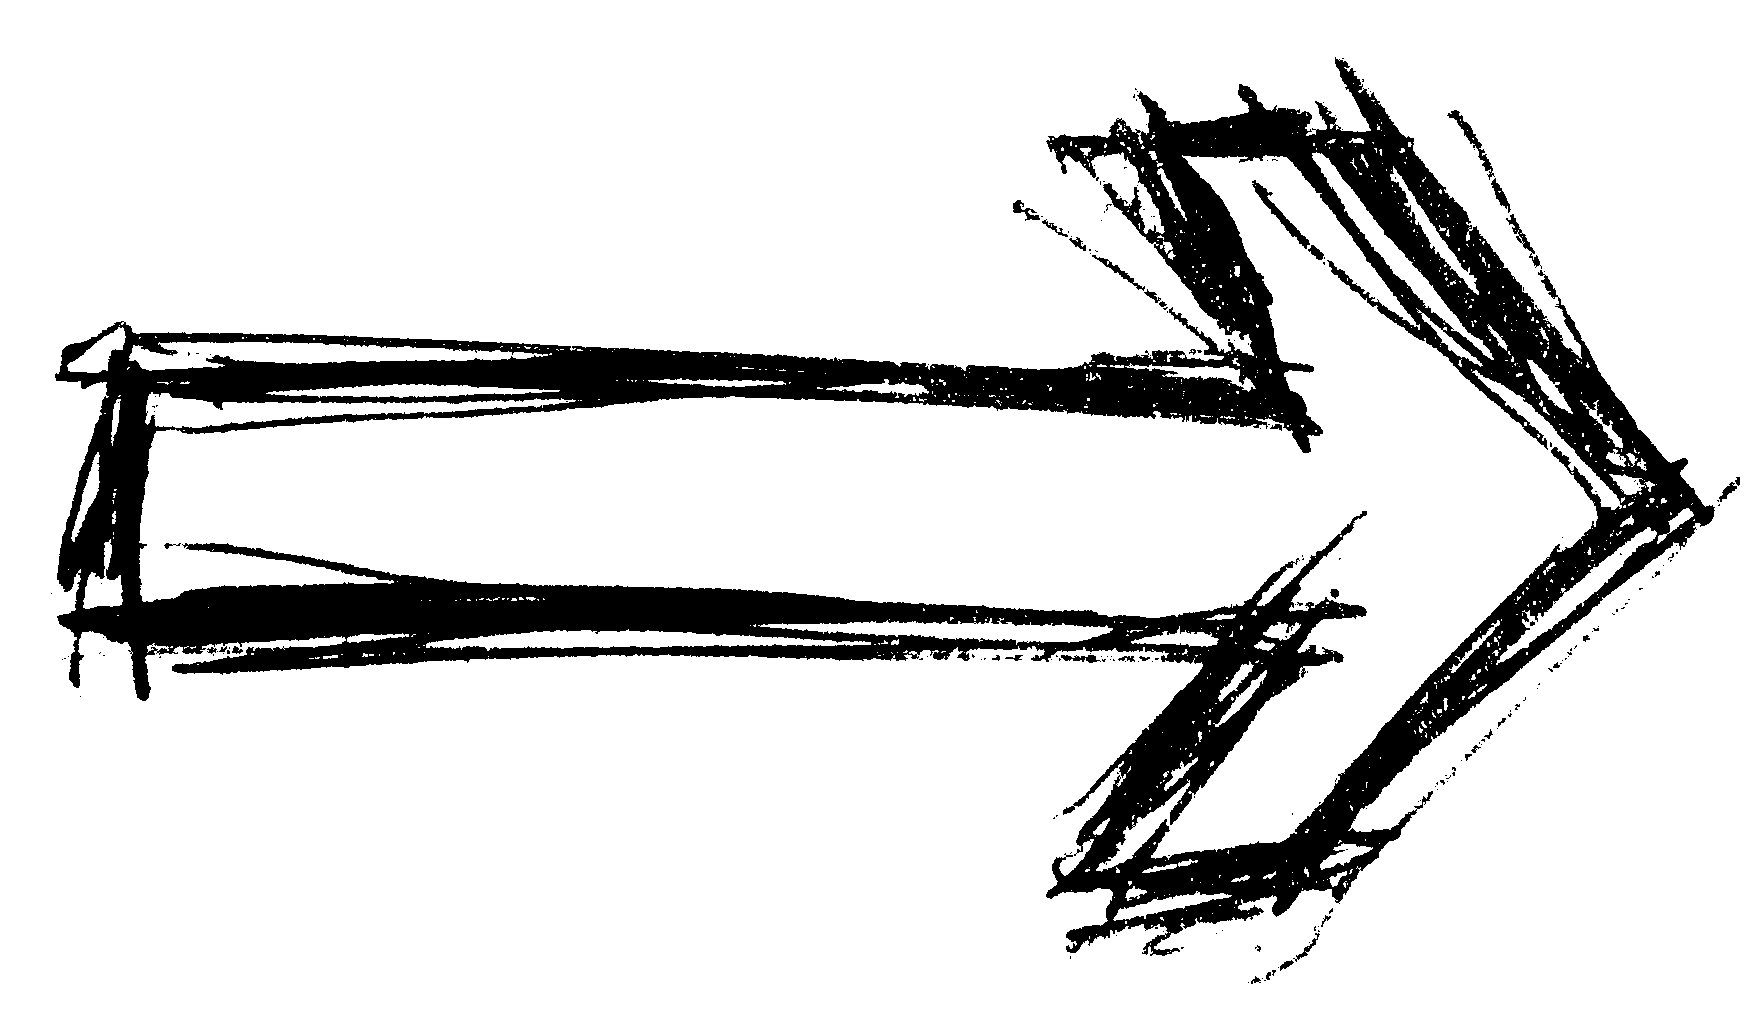 Hand Drawn Arrows PNG Image Transparent | OnlyGFX.com